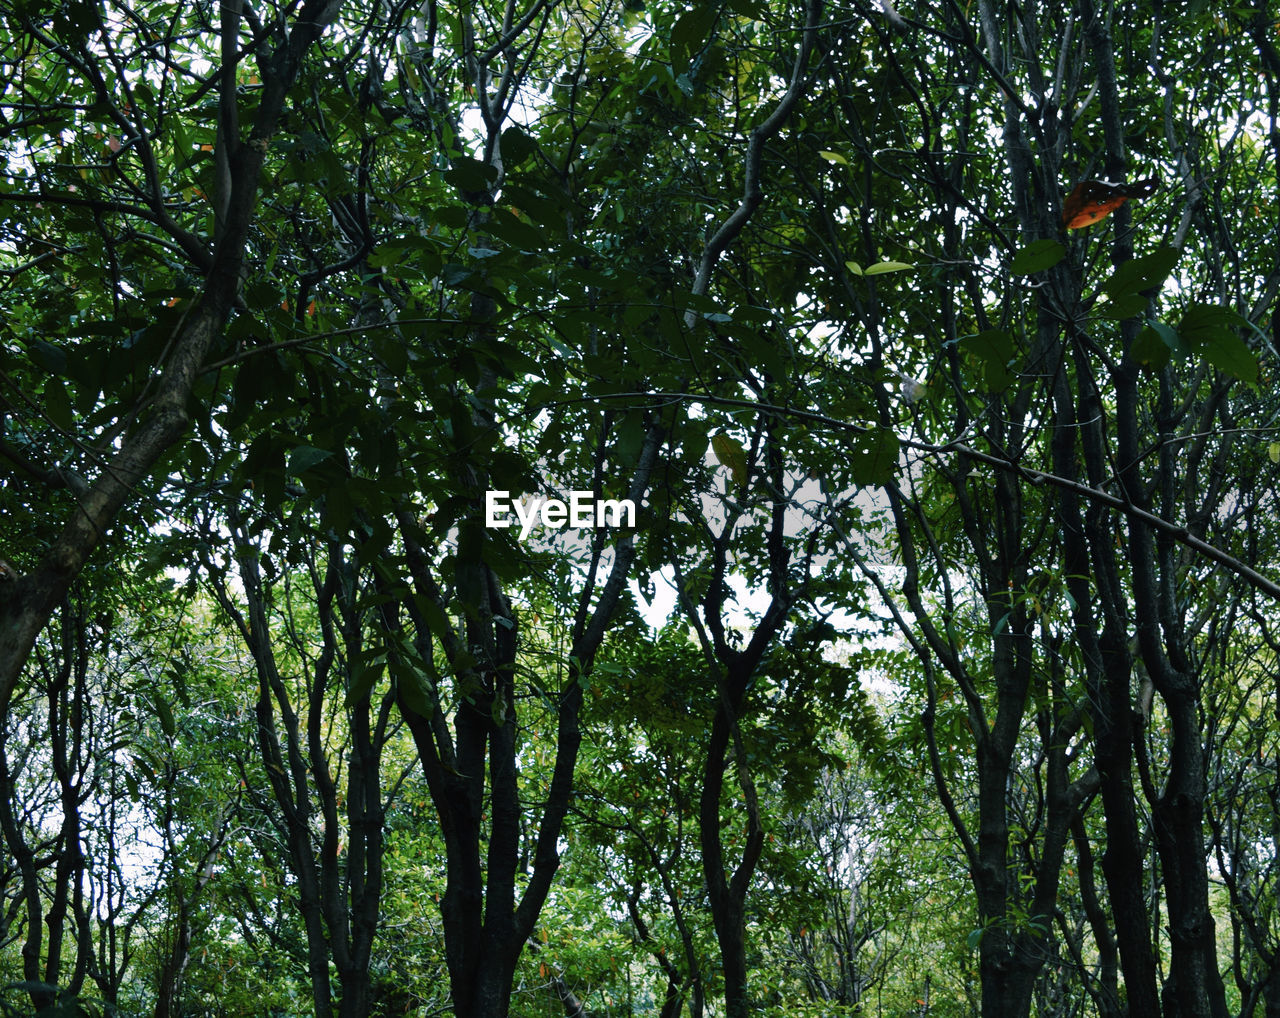 tree, plant, growth, forest, low angle view, green color, tranquility, beauty in nature, land, day, tree trunk, no people, nature, trunk, outdoors, branch, tranquil scene, scenics - nature, lush foliage, full frame, tree canopy, bamboo - plant, rainforest